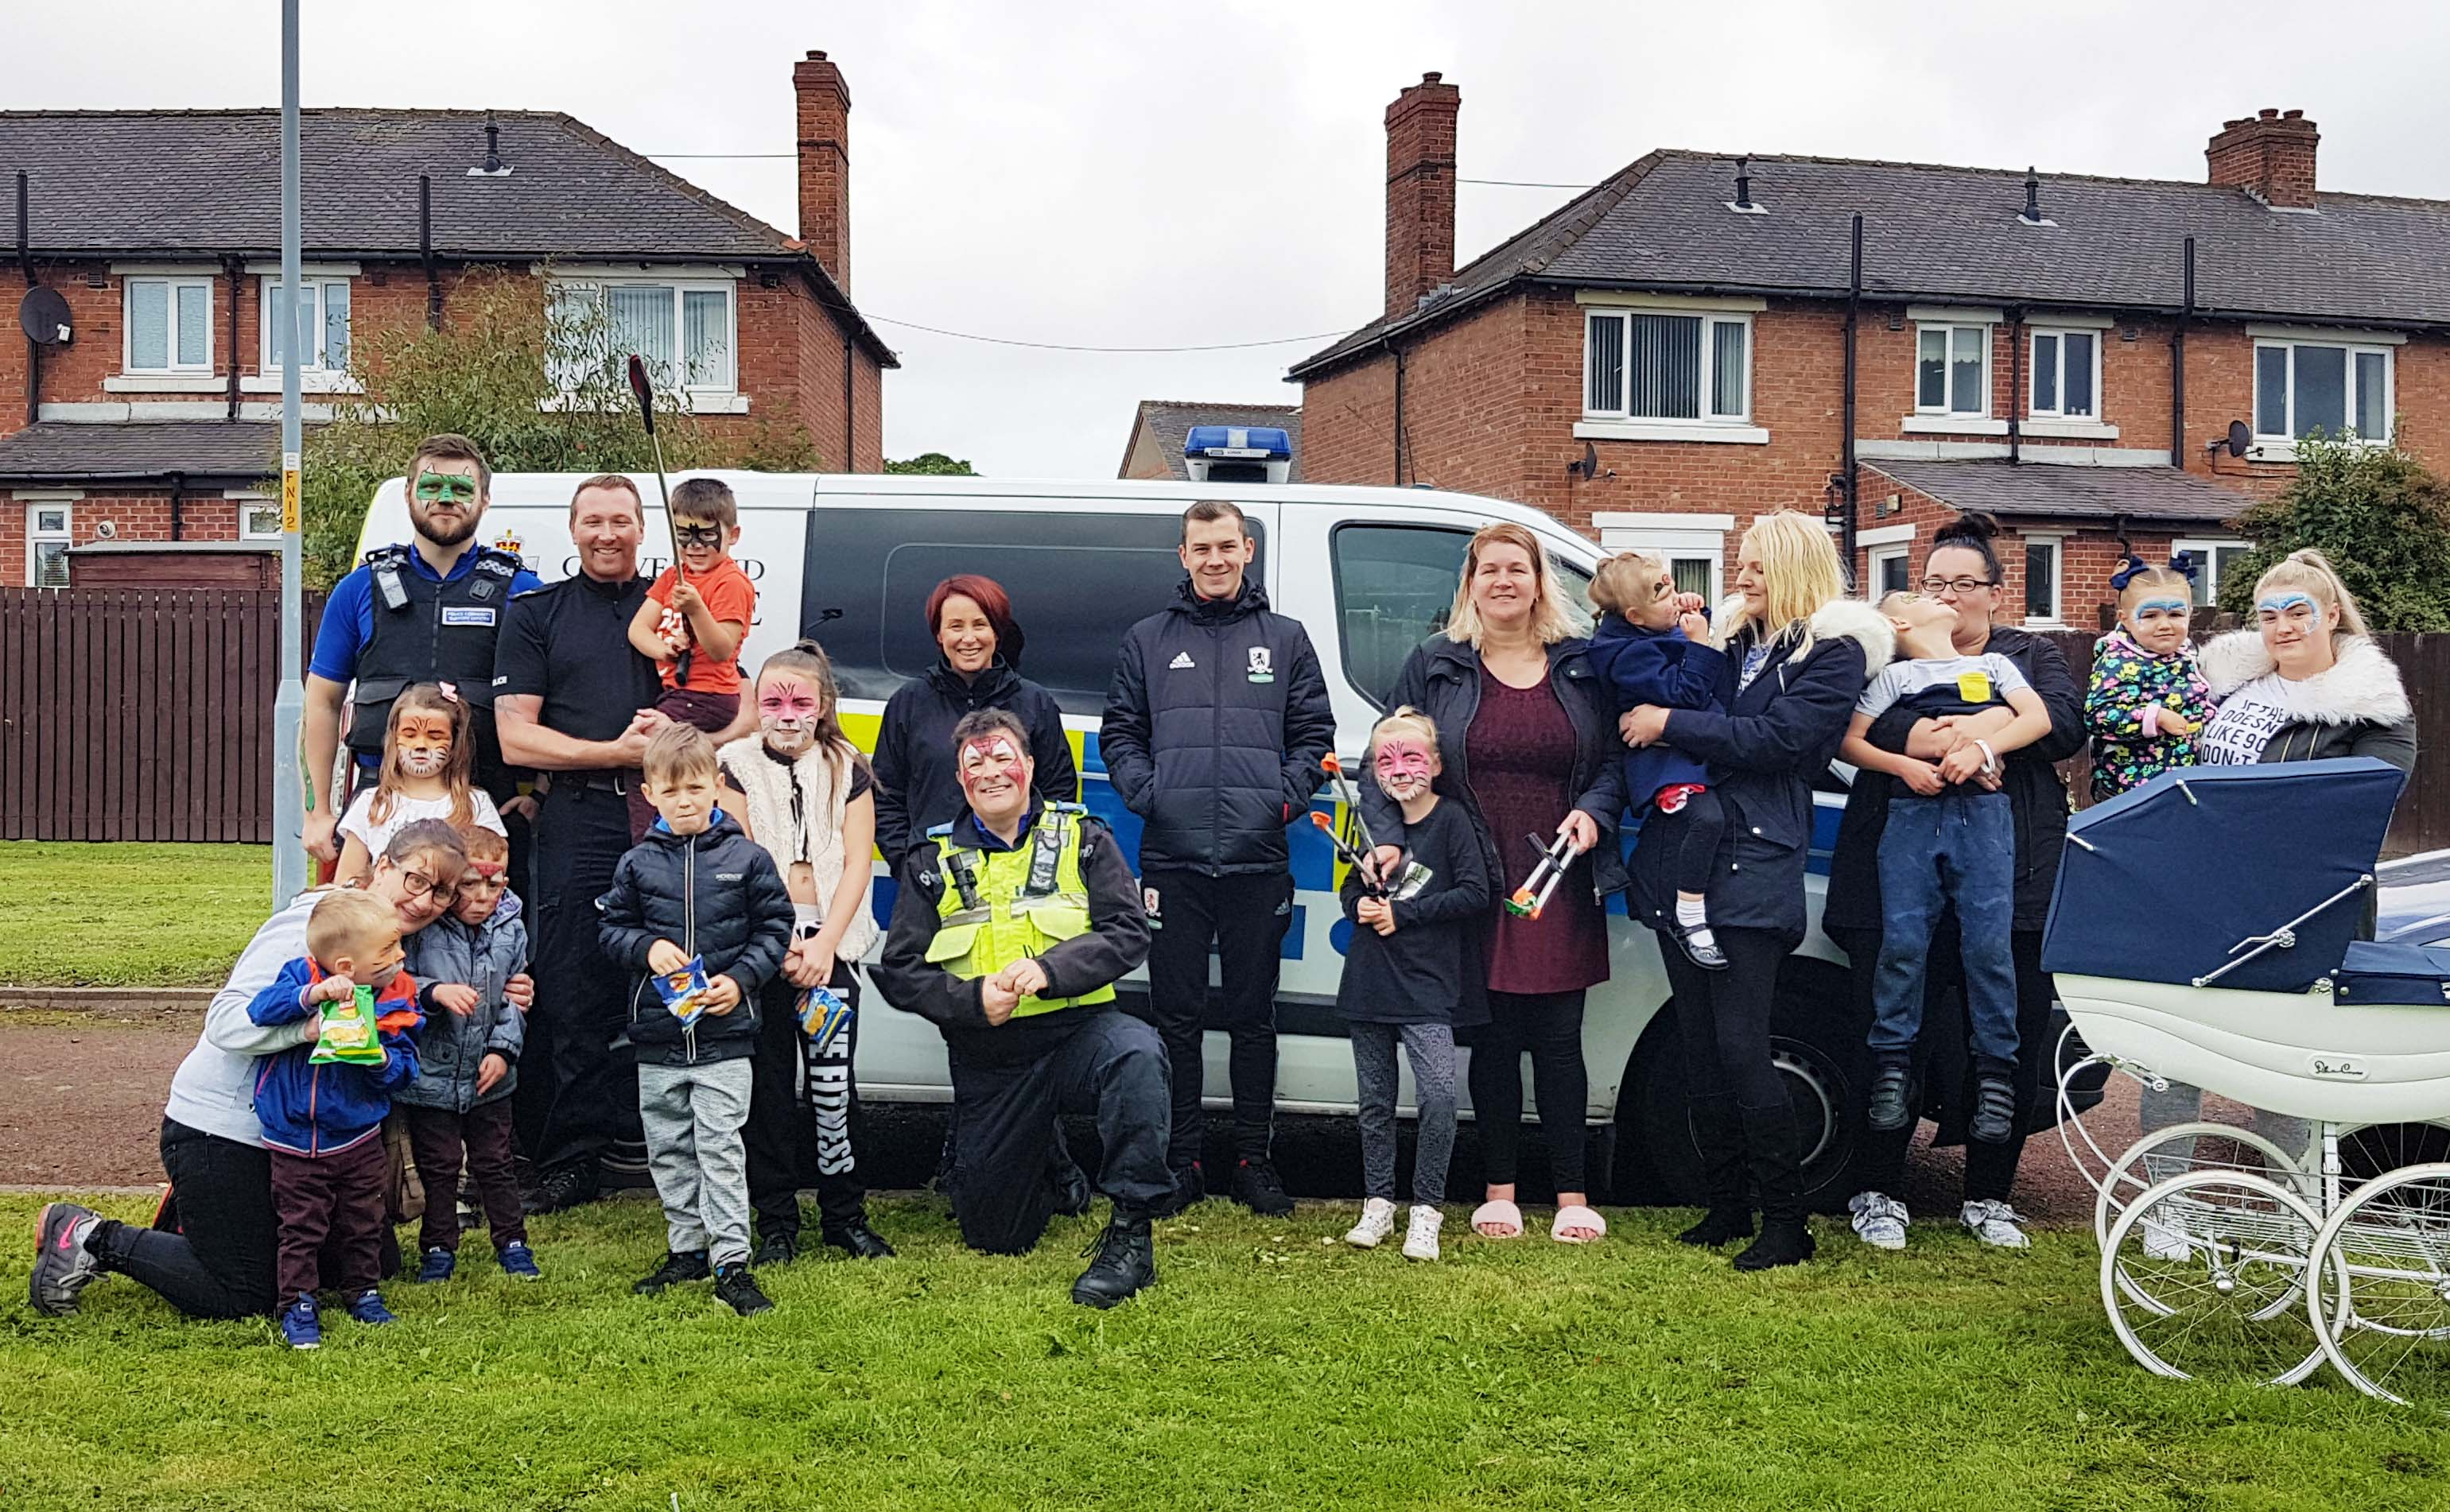 Local residents and agencies celebrate a summer of community action at the Thorndyke Avenue Family Fun Day.